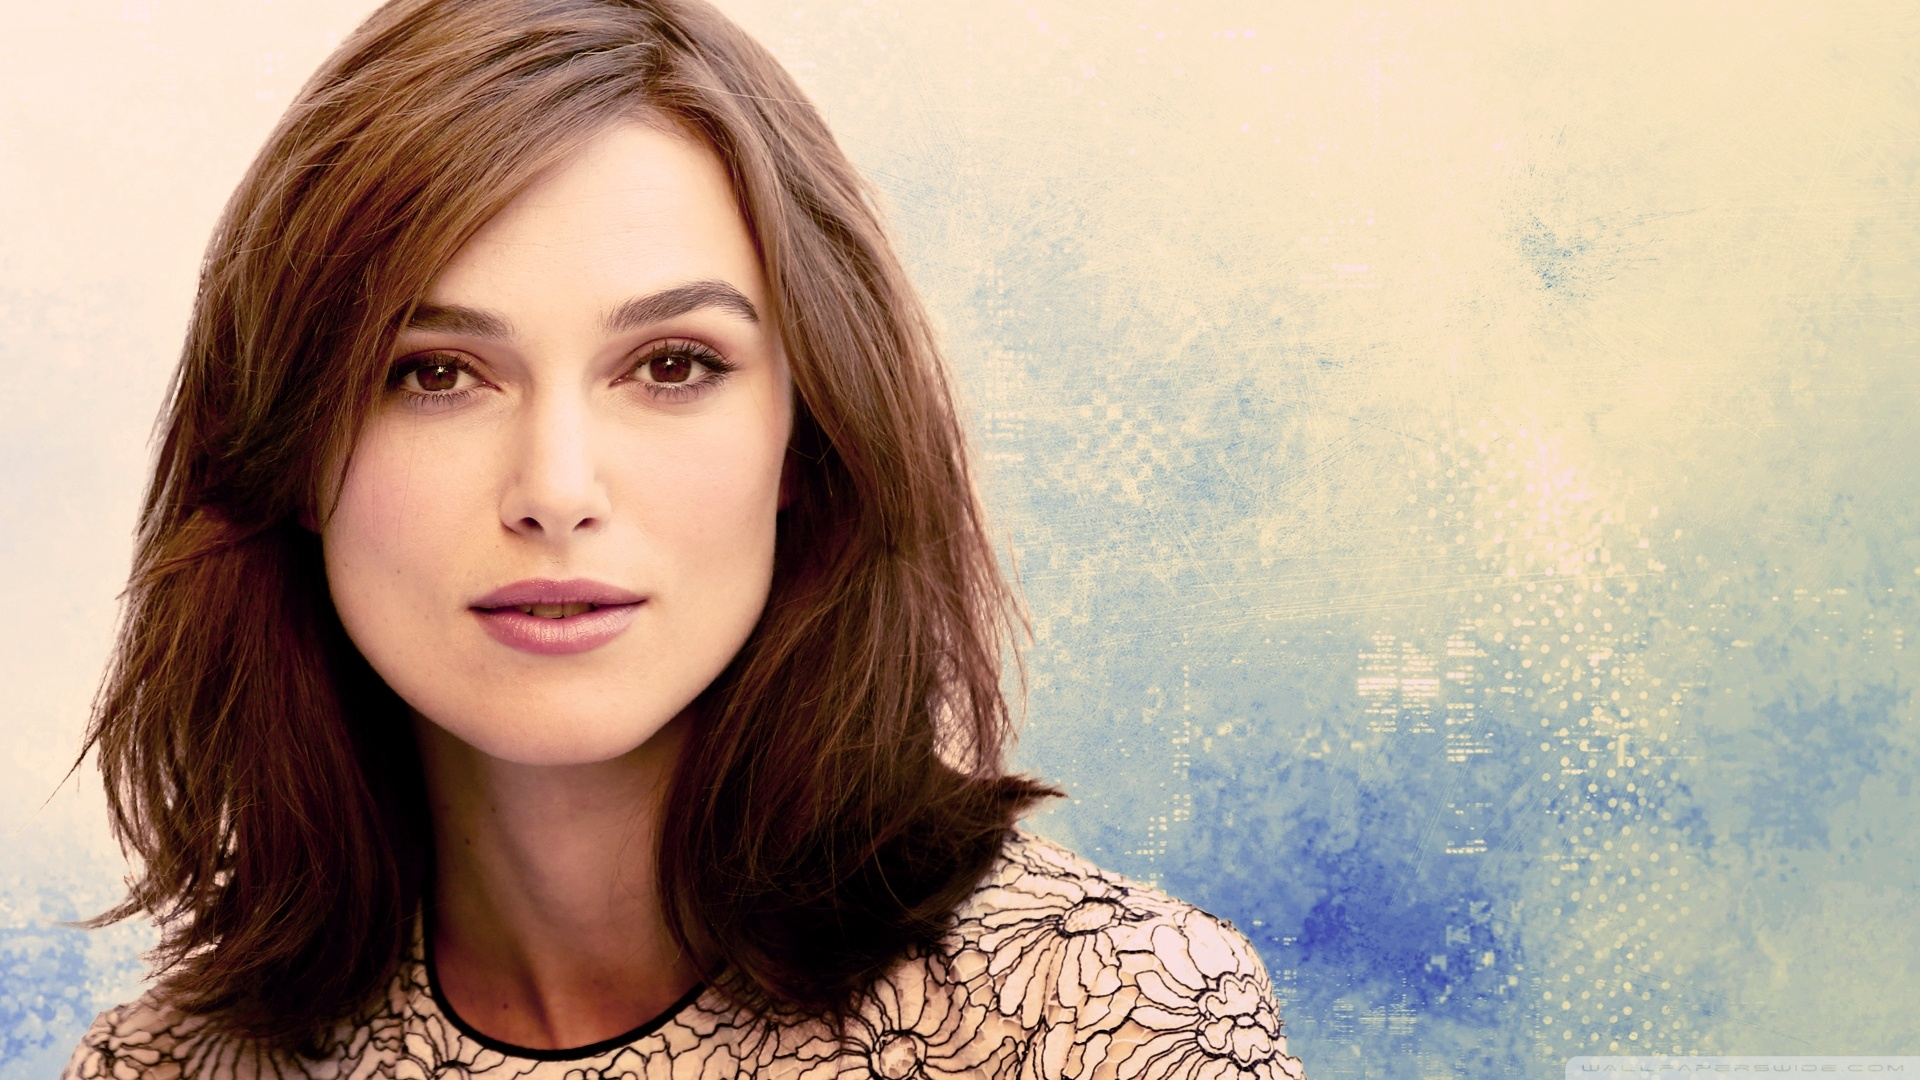 Keira Knightley will produce and star in The Other Typist Keira Knightley